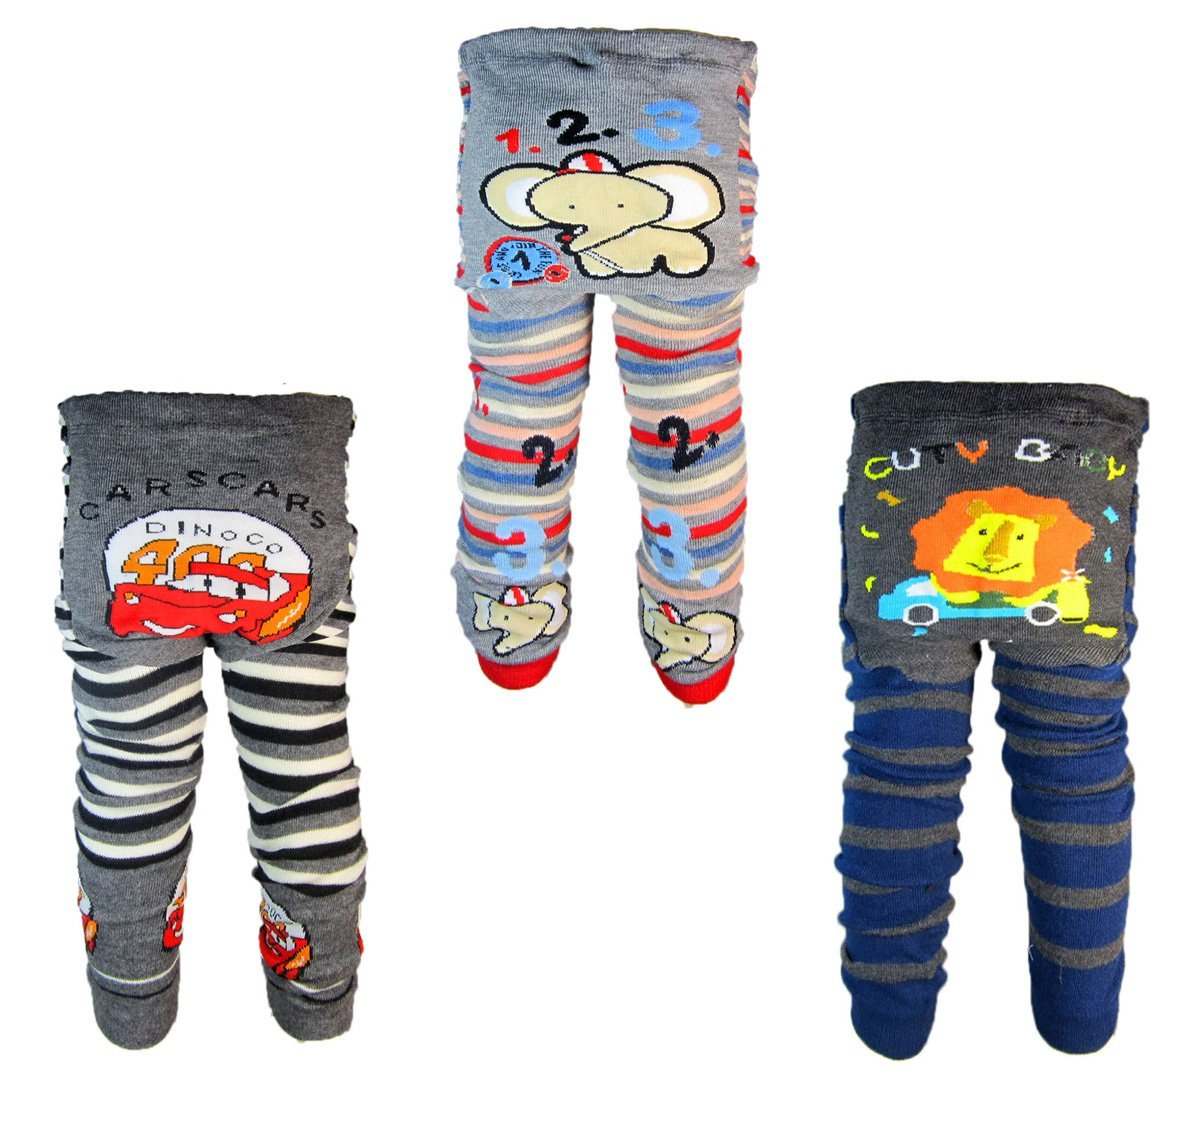 [Backbuy] 3 Pants 0-24 Months Baby Boys Toddler Leggings Trousers Knitted Pants(0-24 Months)